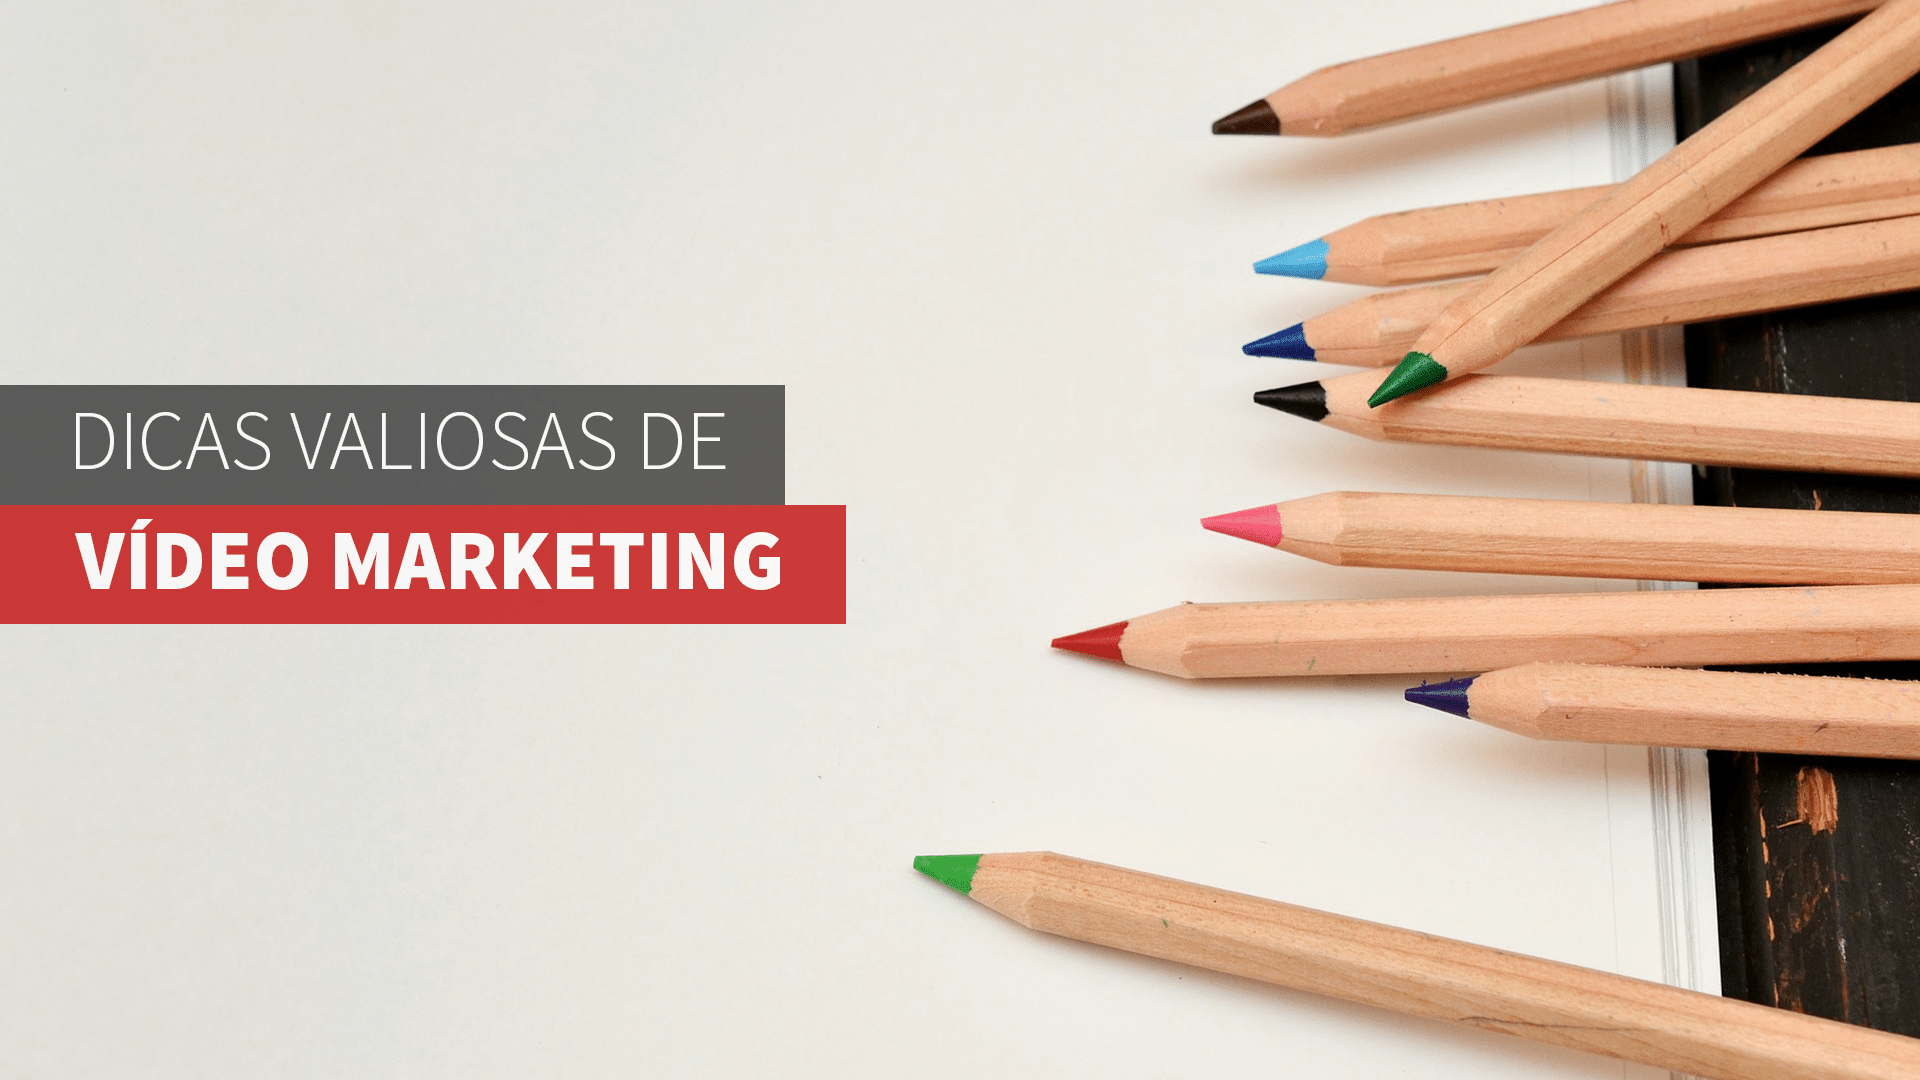 DICAS VALIOSAS DE VÍDEO MARKETING